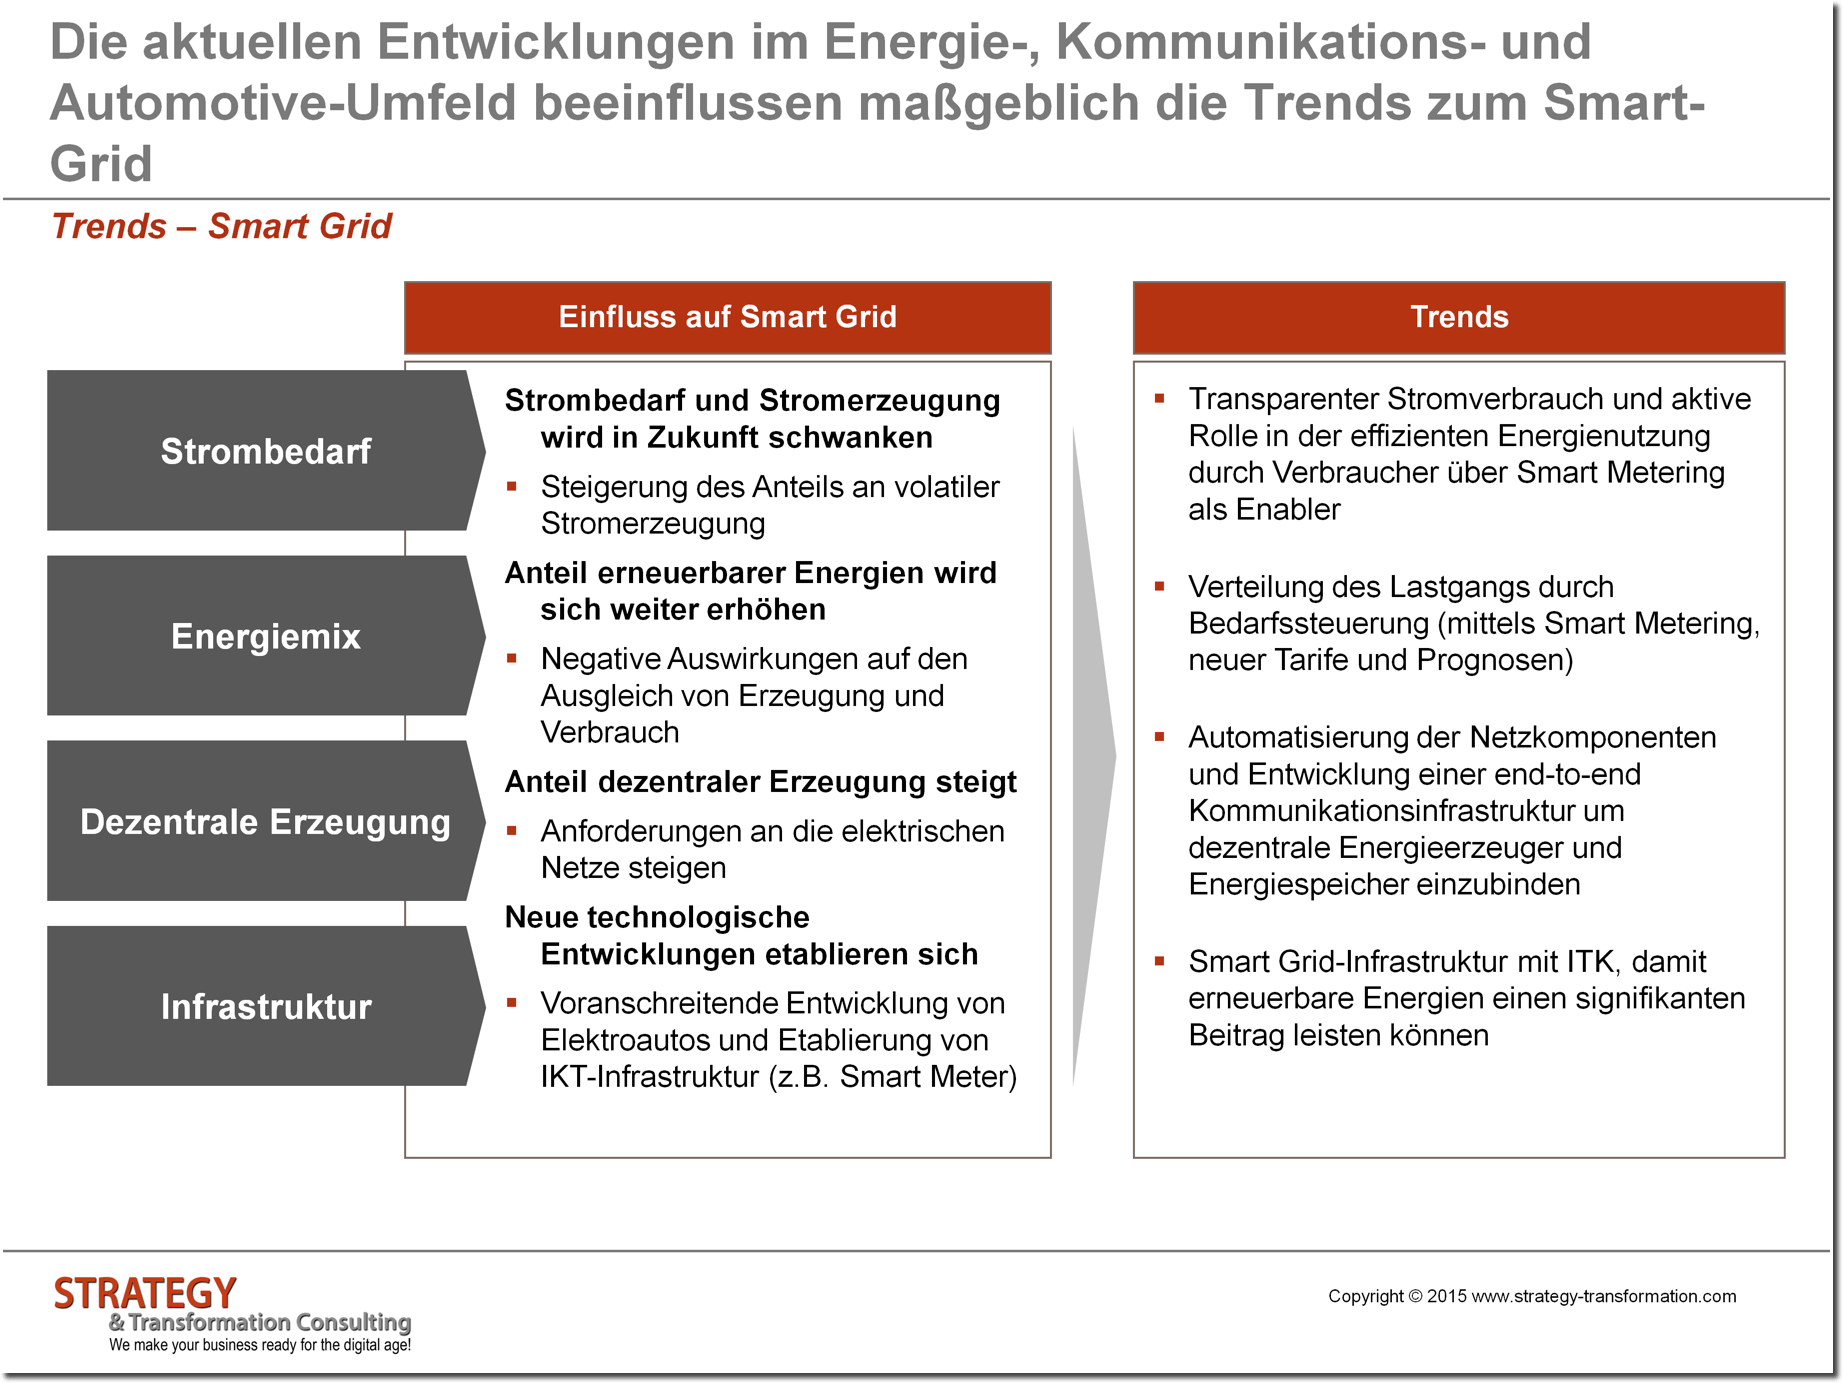 Trends zum Smart Grid